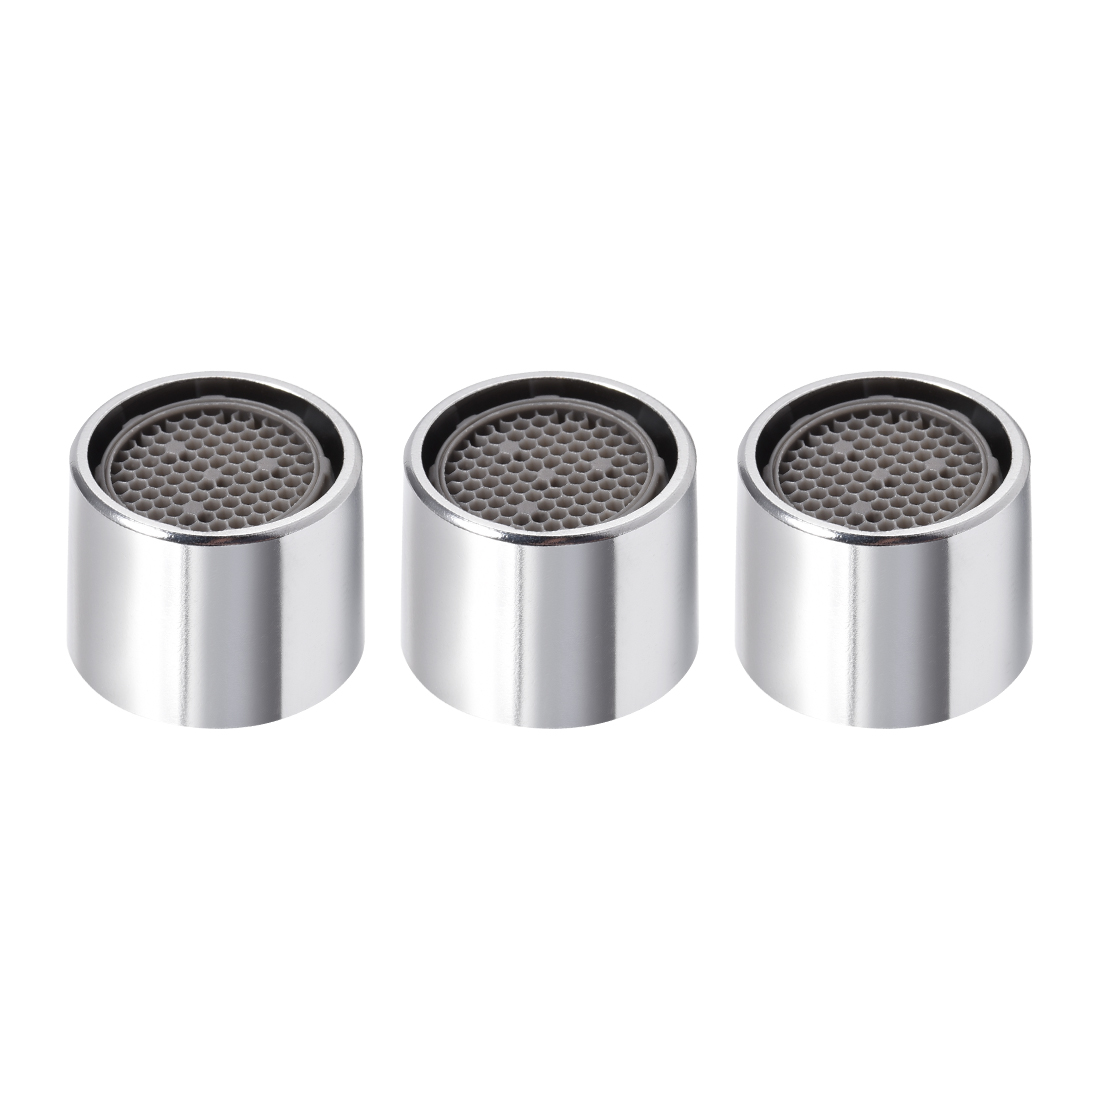 Uxcell 3 Pcs Faucet Aerator M20 Female Thread Bathroom Kitchen Faucet Aerator Replacement Part